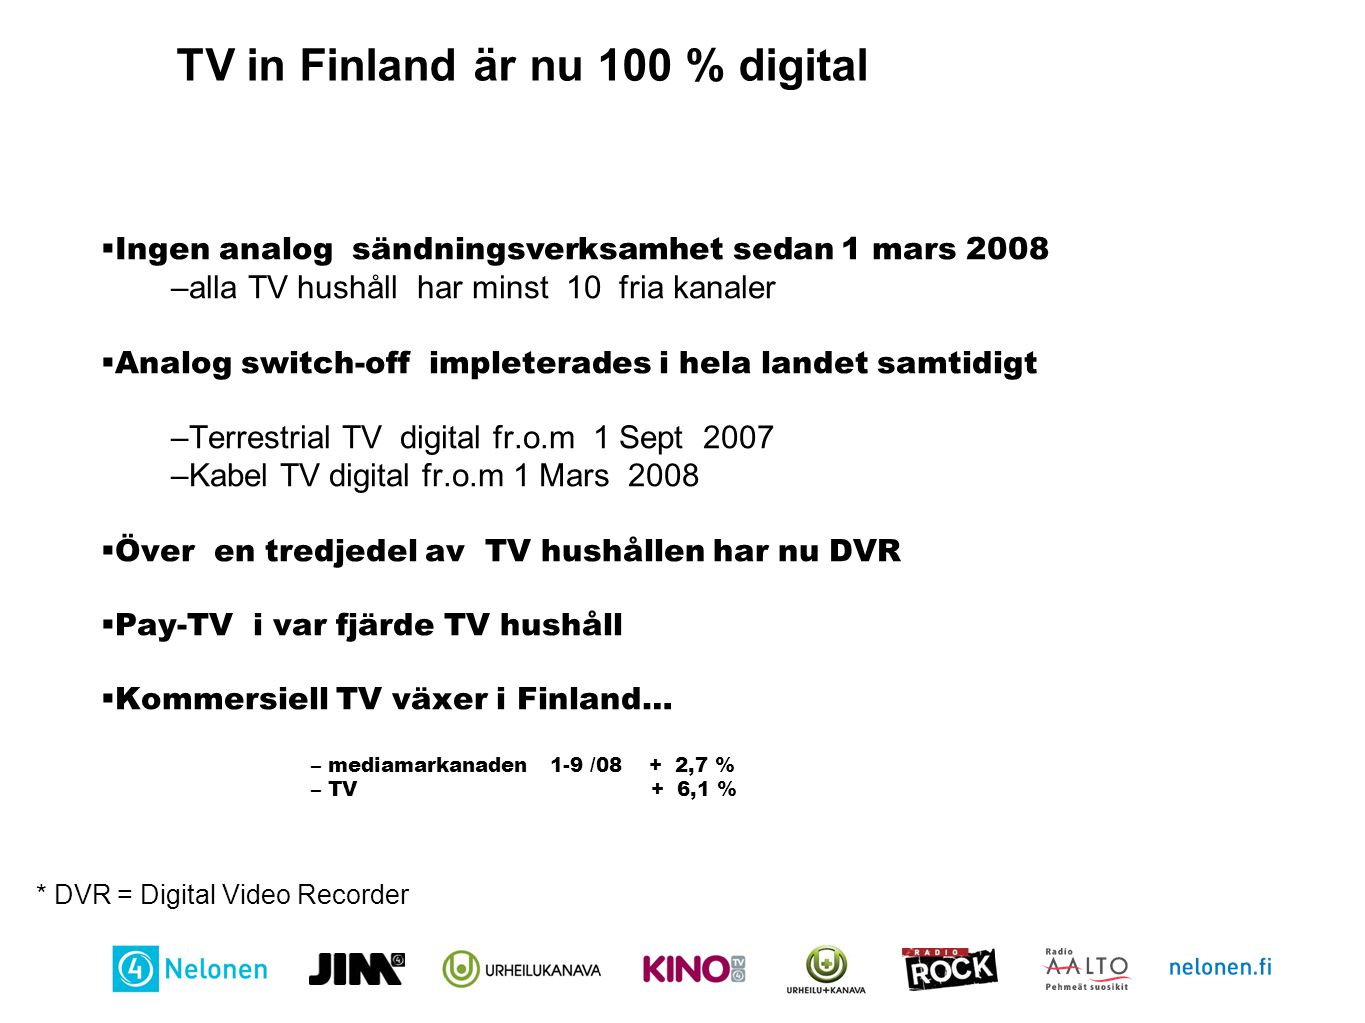 TV in Finland är nu 100 % digital  Ingen analog sändningsverksamhet sedan 1 mars 2008 –alla TV hushåll har minst 10 fria kanaler  Analog switch-off impleterades i hela landet samtidigt –Terrestrial TV digital fr.o.m 1 Sept 2007 –Kabel TV digital fr.o.m 1 Mars 2008  Över en tredjedel av TV hushållen har nu DVR  Pay-TV i var fjärde TV hushåll  Kommersiell TV växer i Finland… – mediamarkanaden 1-9 /08 + 2,7 % – TV + 6,1 % * DVR = Digital Video Recorder